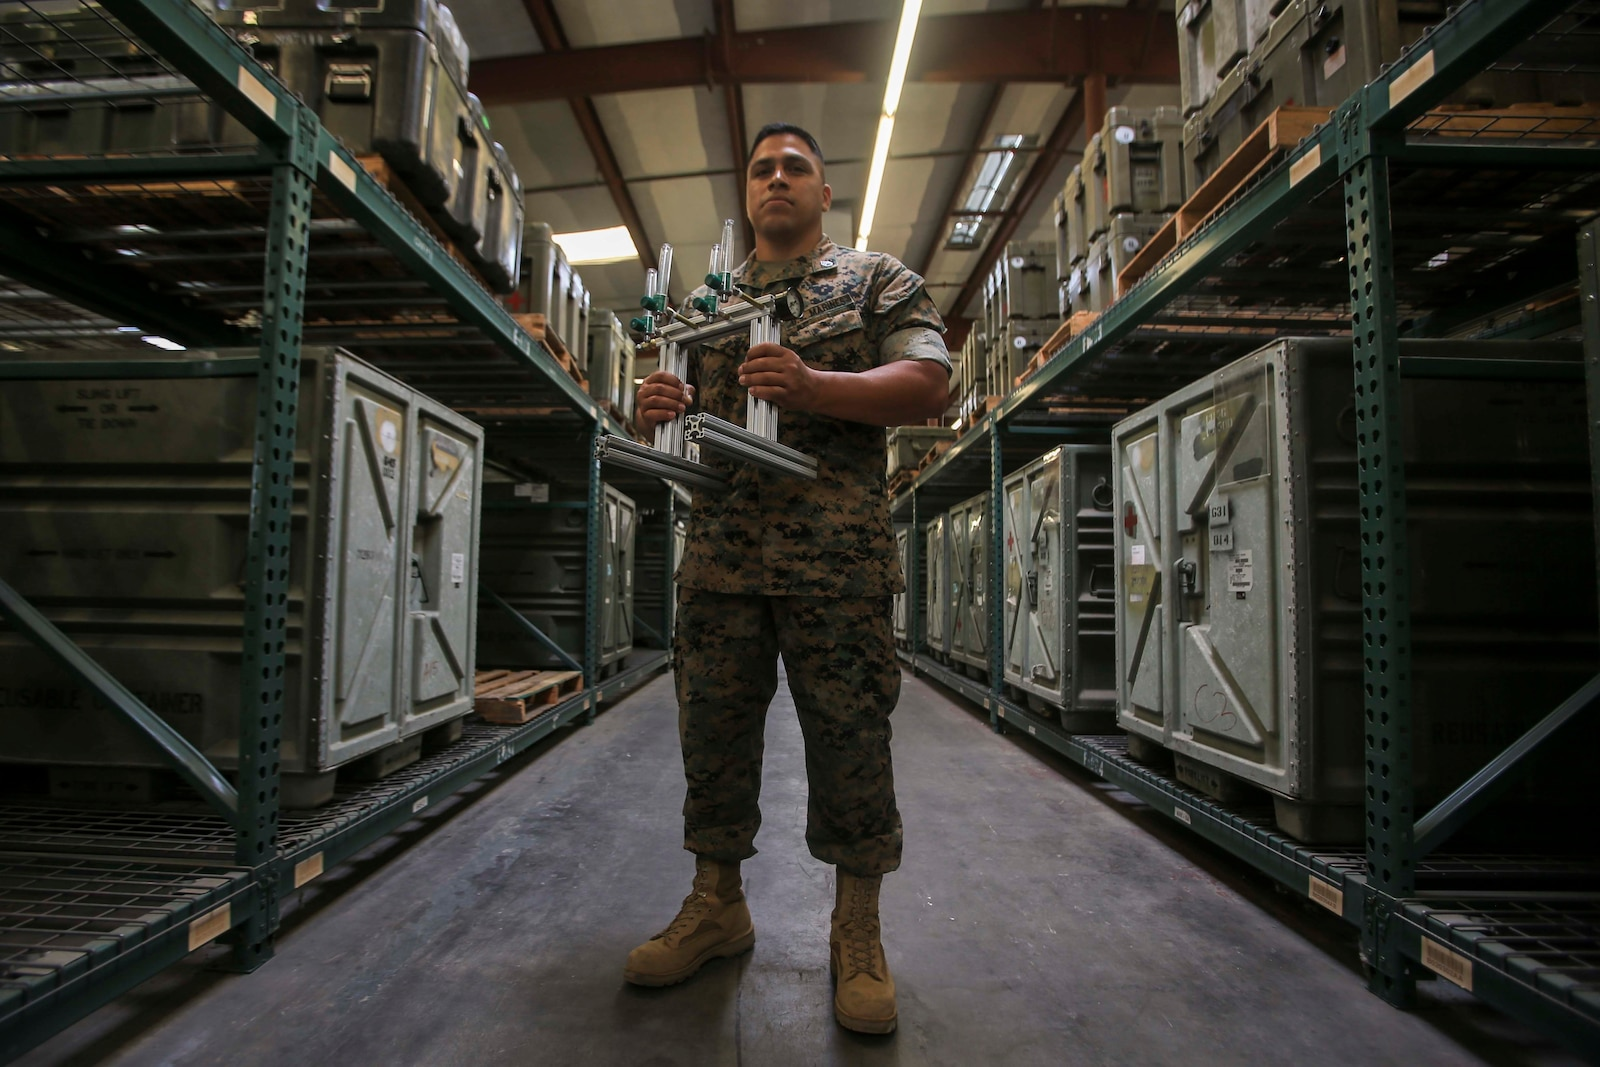 Staff Sgt. Victor Cervantes developed an oxygen manifold to help ease the burden on medical staff.